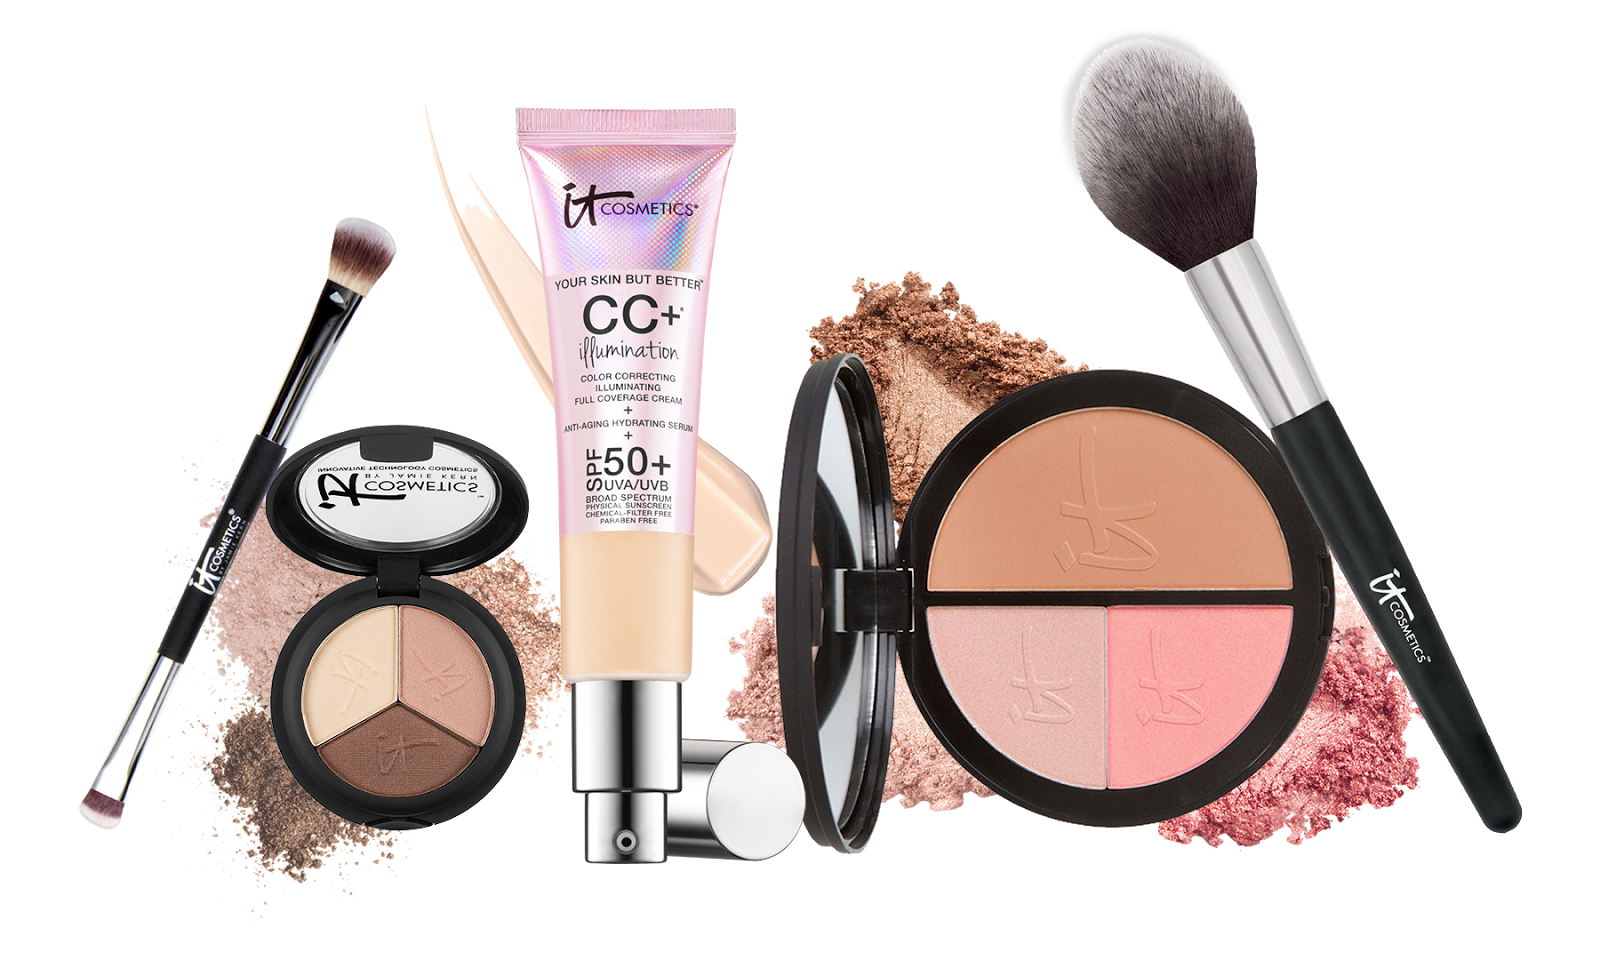 New spring release for It cosmetics and qvc